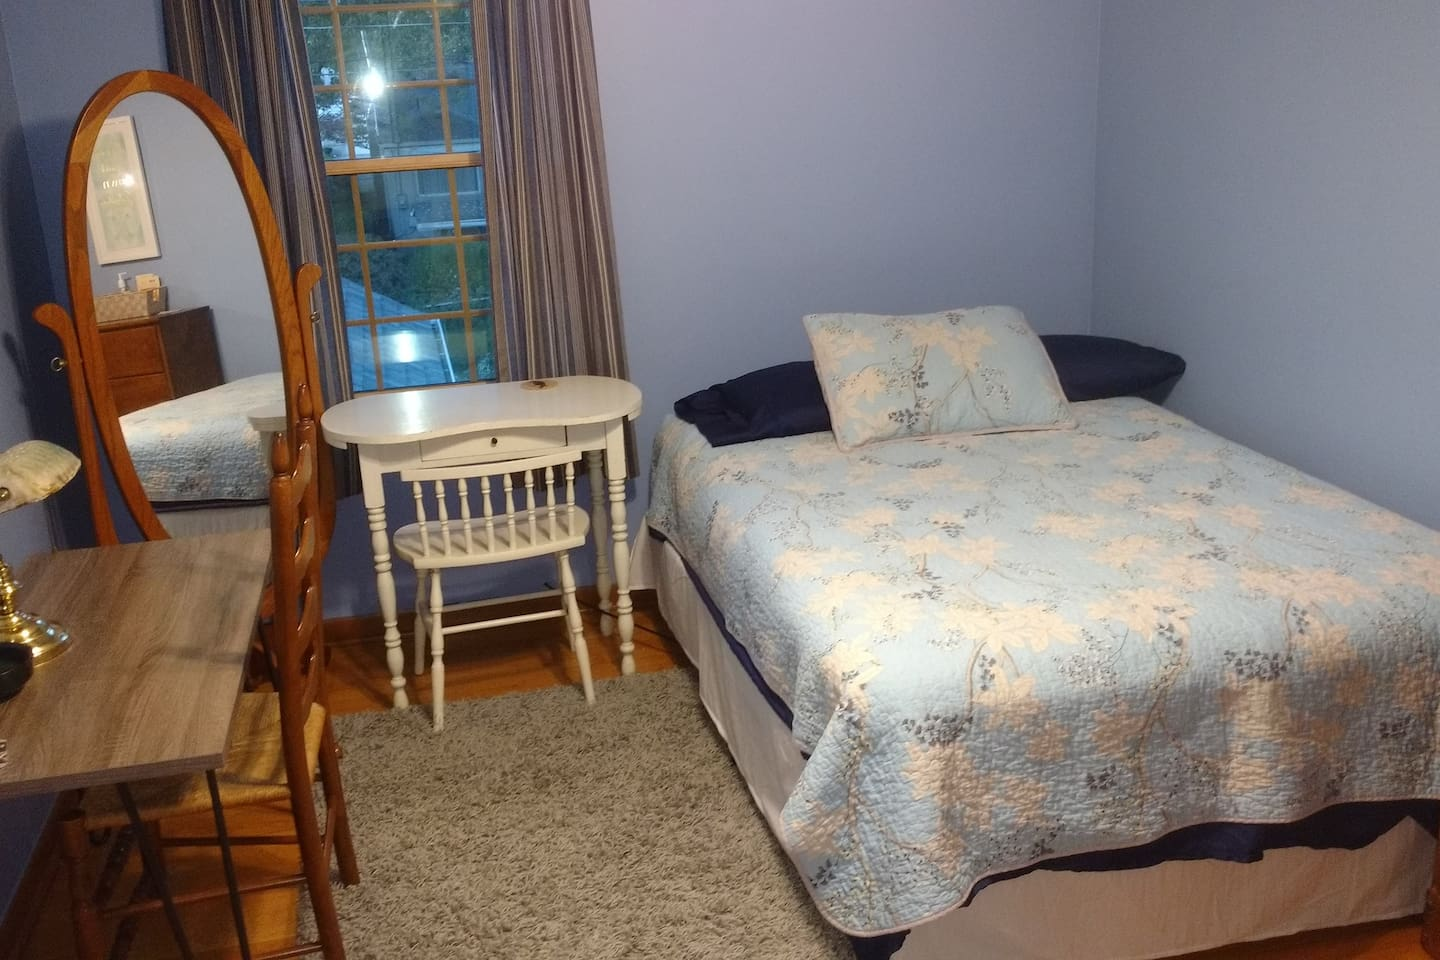 Full double bed, desk, chairs, dresser, closet and ceiling fan.